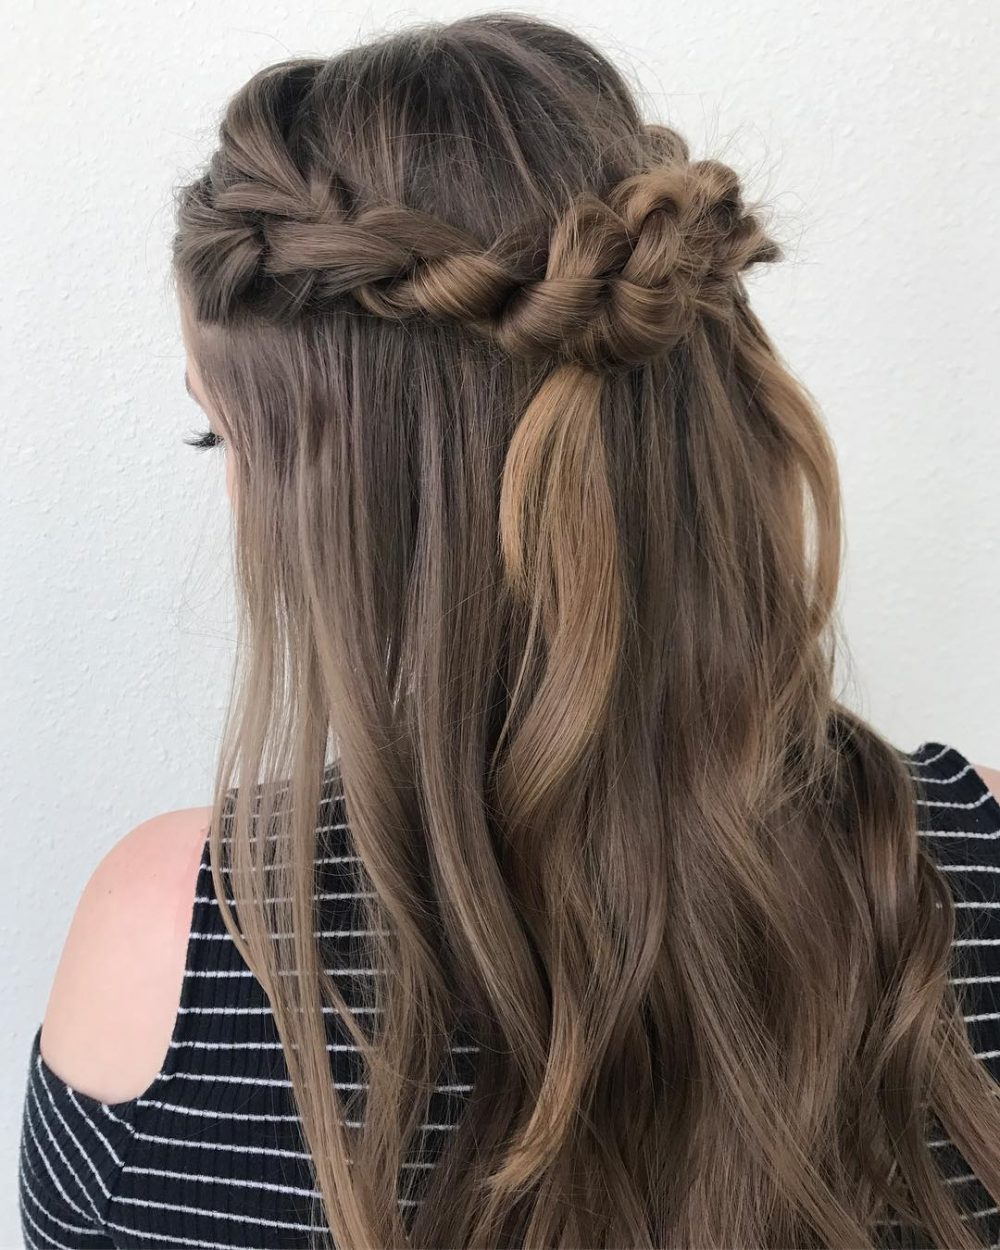 Boho Braided Knots hairstyle